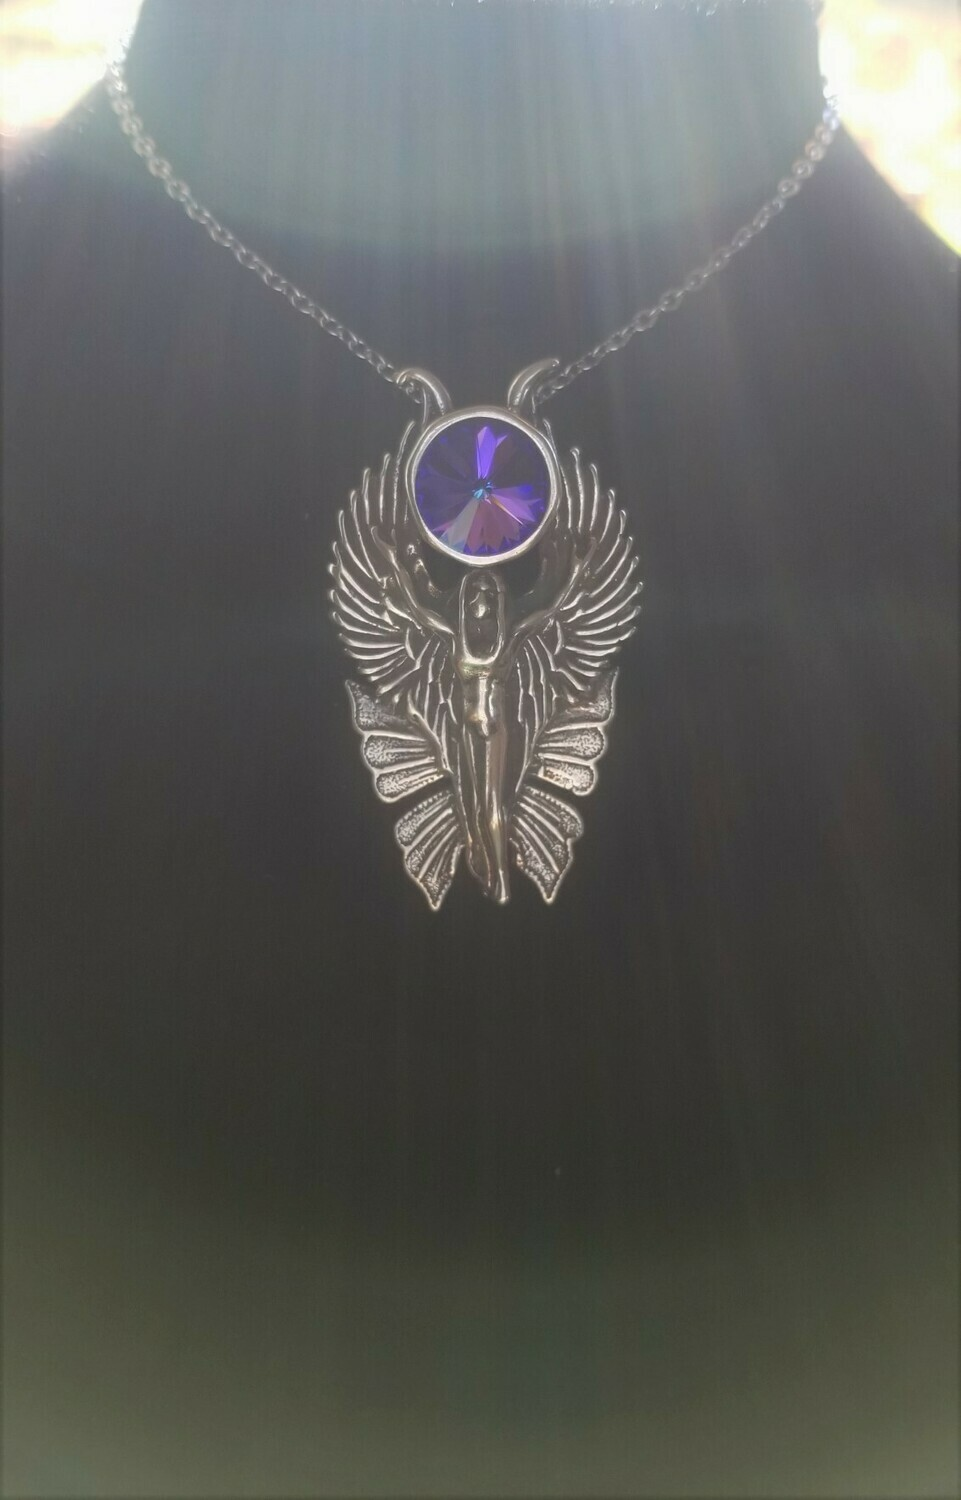 WA HE AH Sterling Silver/Goddess Fairy Angel Deva/Retreat Fairy sale Blue Violet  Crystal $233/$313